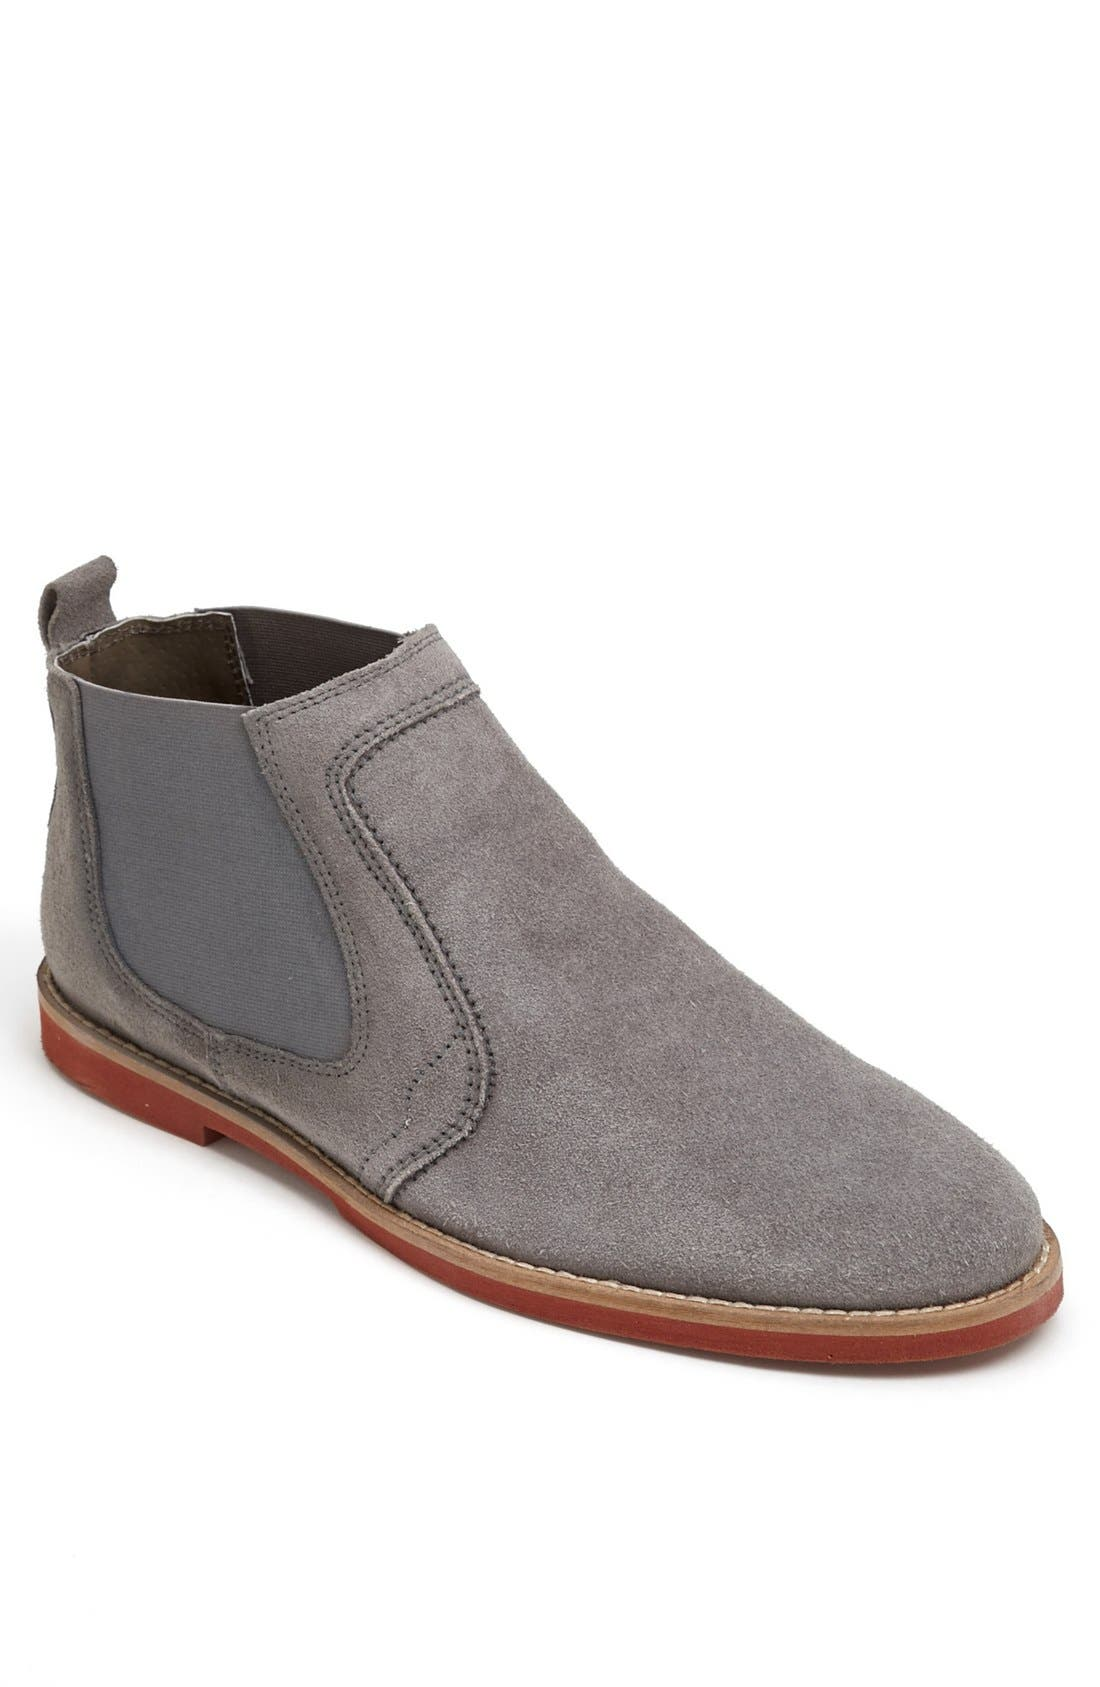 Main Image - Frank Wright 'Wise' Chelsea Boot